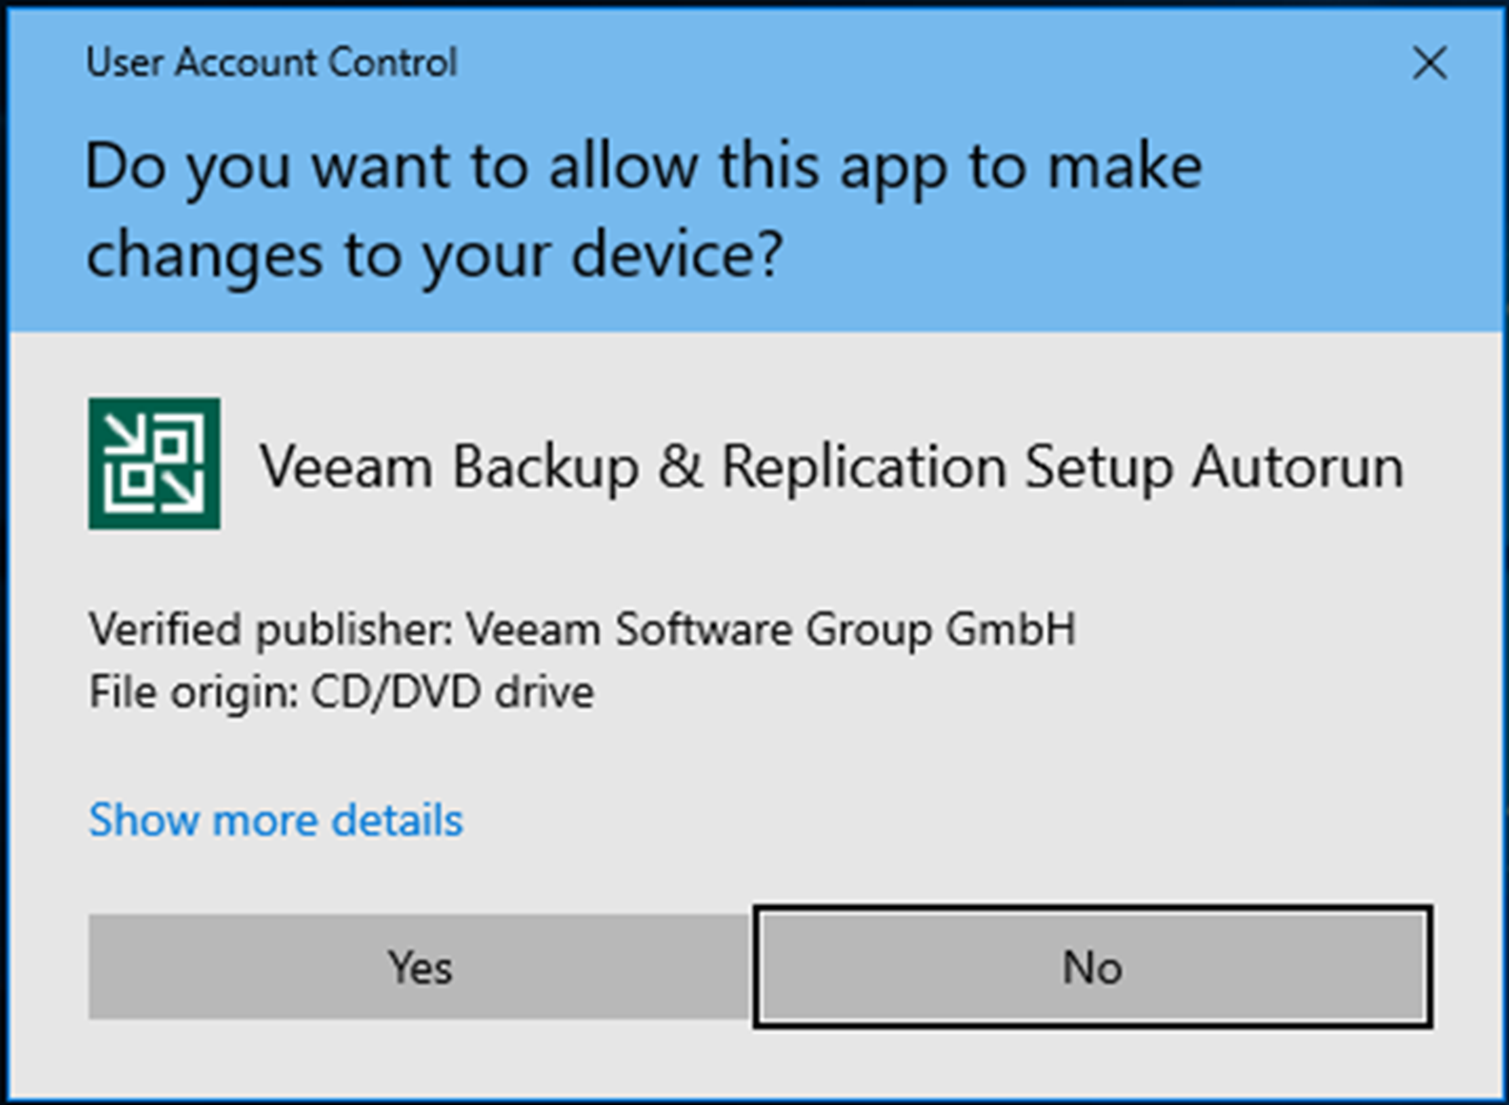 100320 1854 HowtoInstal6 - How to Install (Upgrade) Veeam Backup and Replication V10a #Veeam #VBR 10a #Hyper-V #WINDOWSERVER #Azure #AWS #NAS #VMWARE #vCloud #Azure Stack #Linux